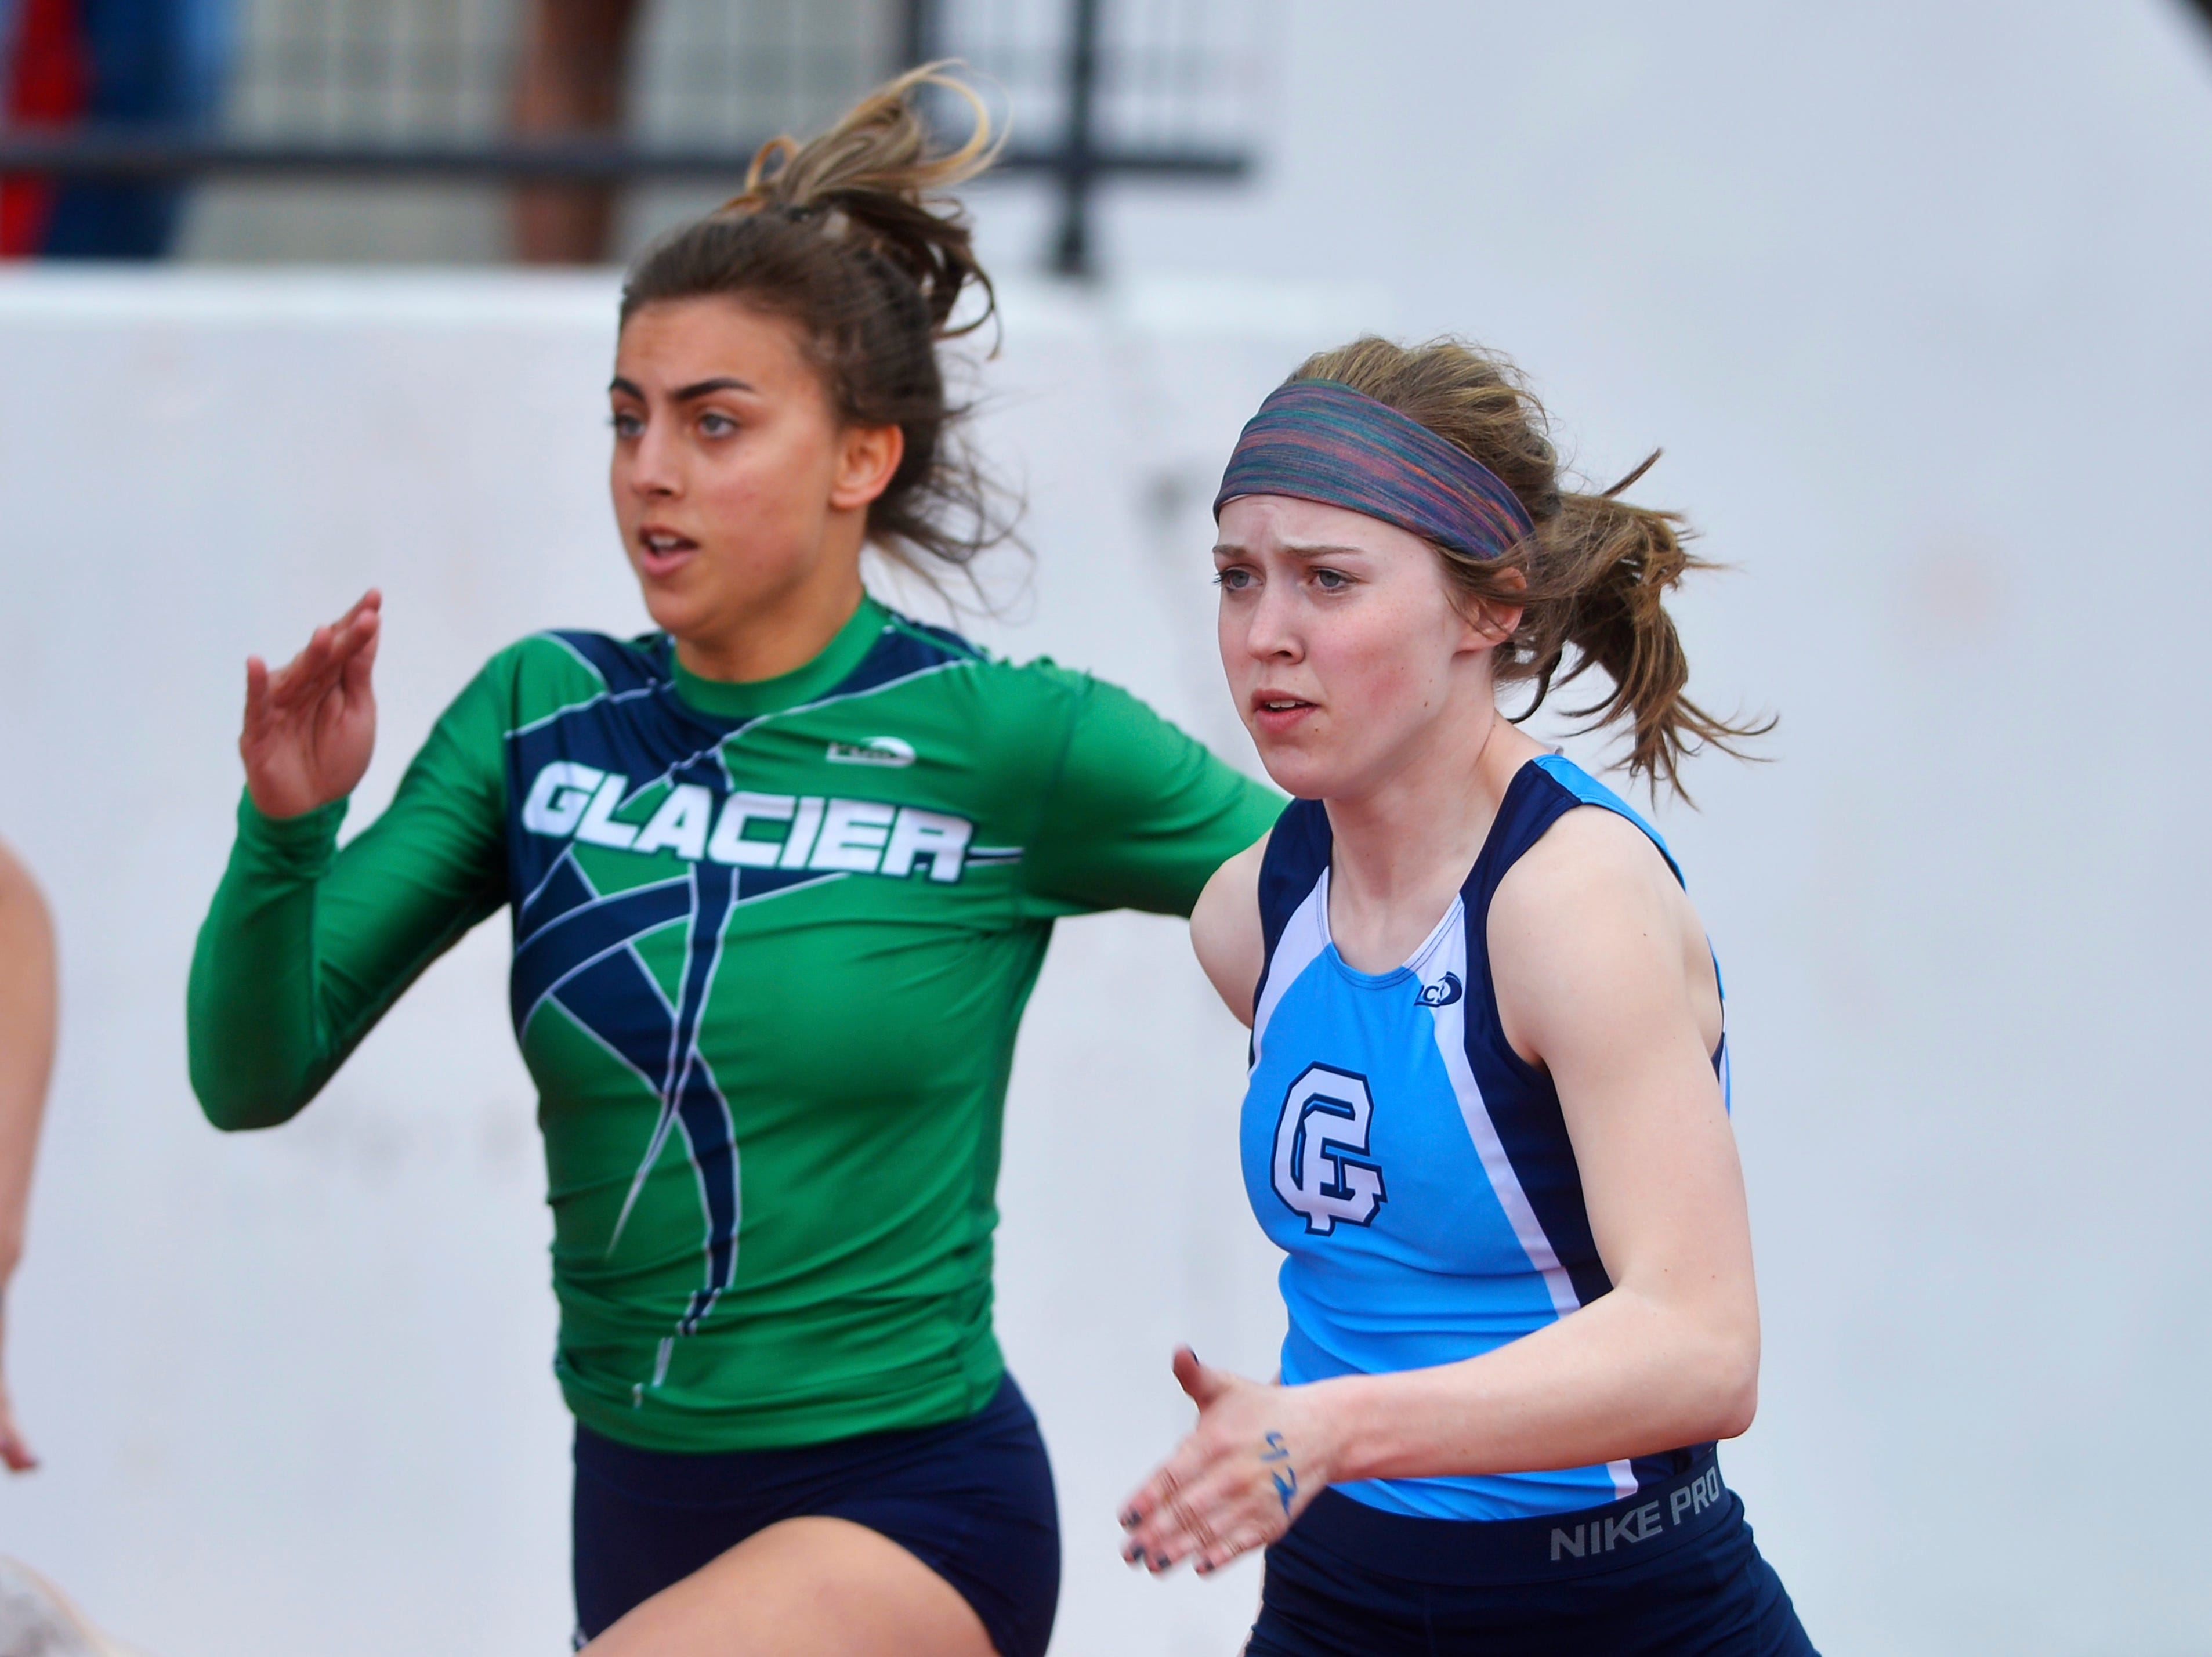 Great Falls High's Parker Sanford edges ahead of the field in the 100m dash at Friday's dual track meet against Glacier High.